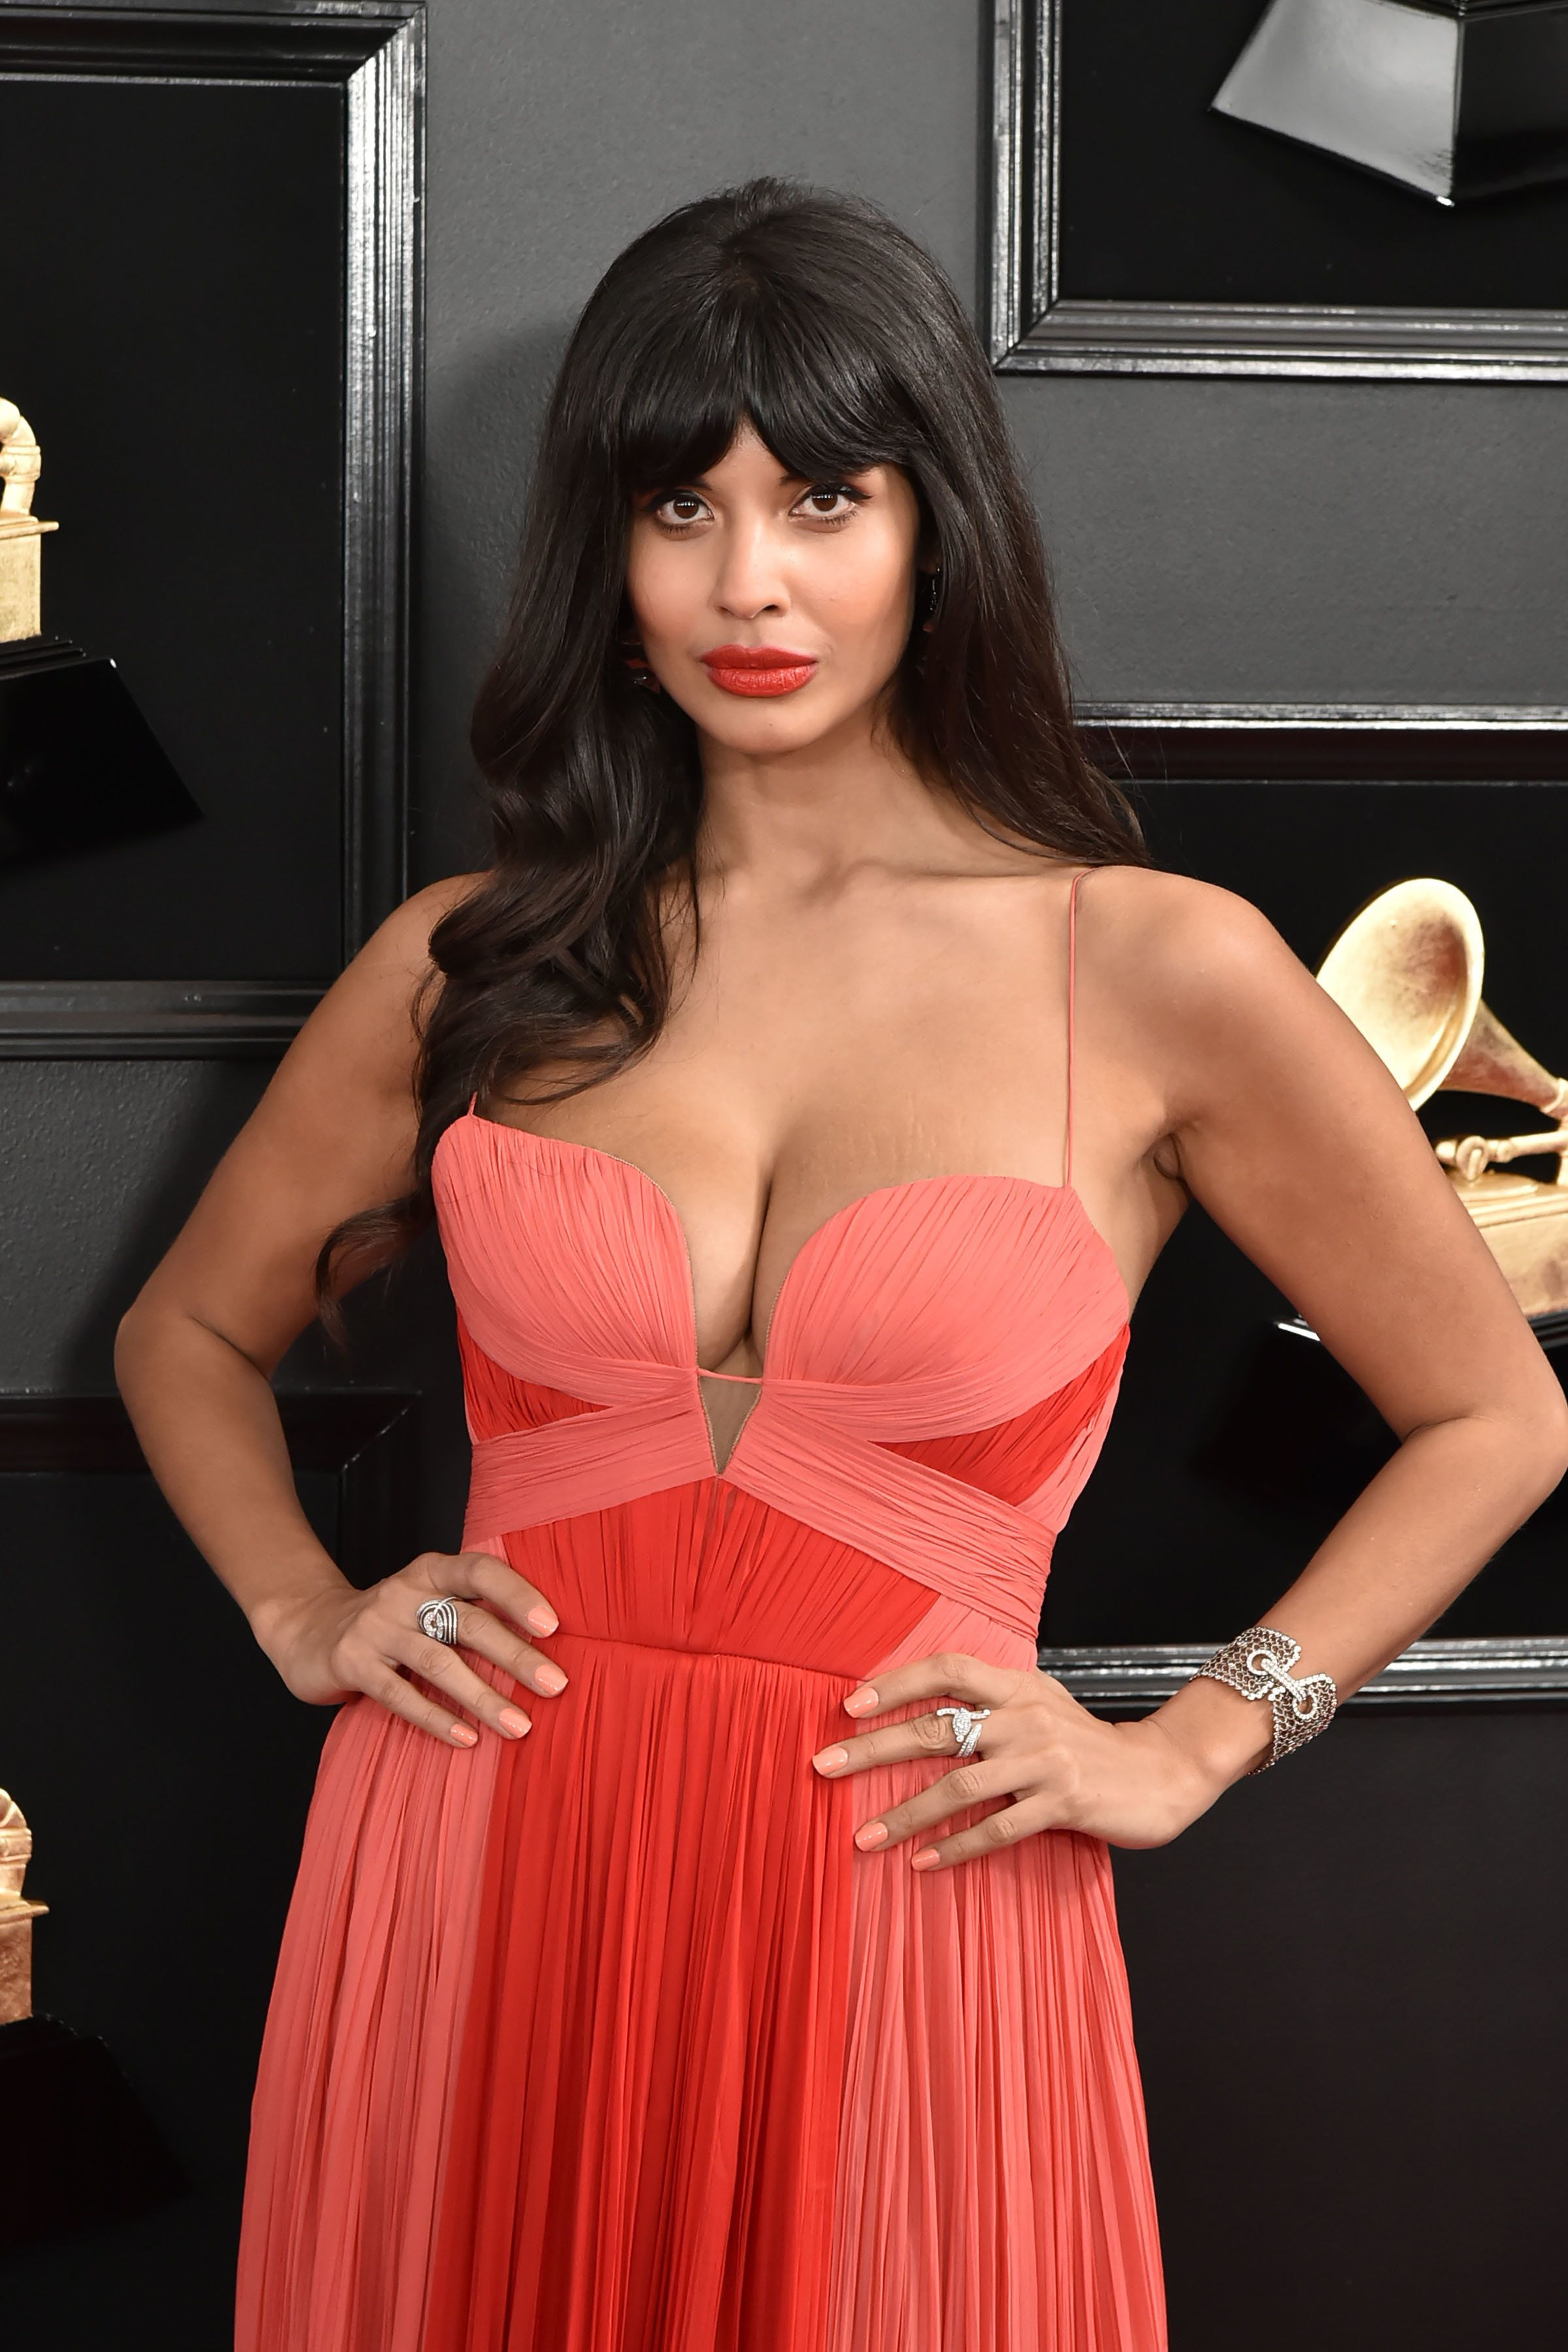 Jameela Jamil Gets Real About Why Shes So Aggressive About Body